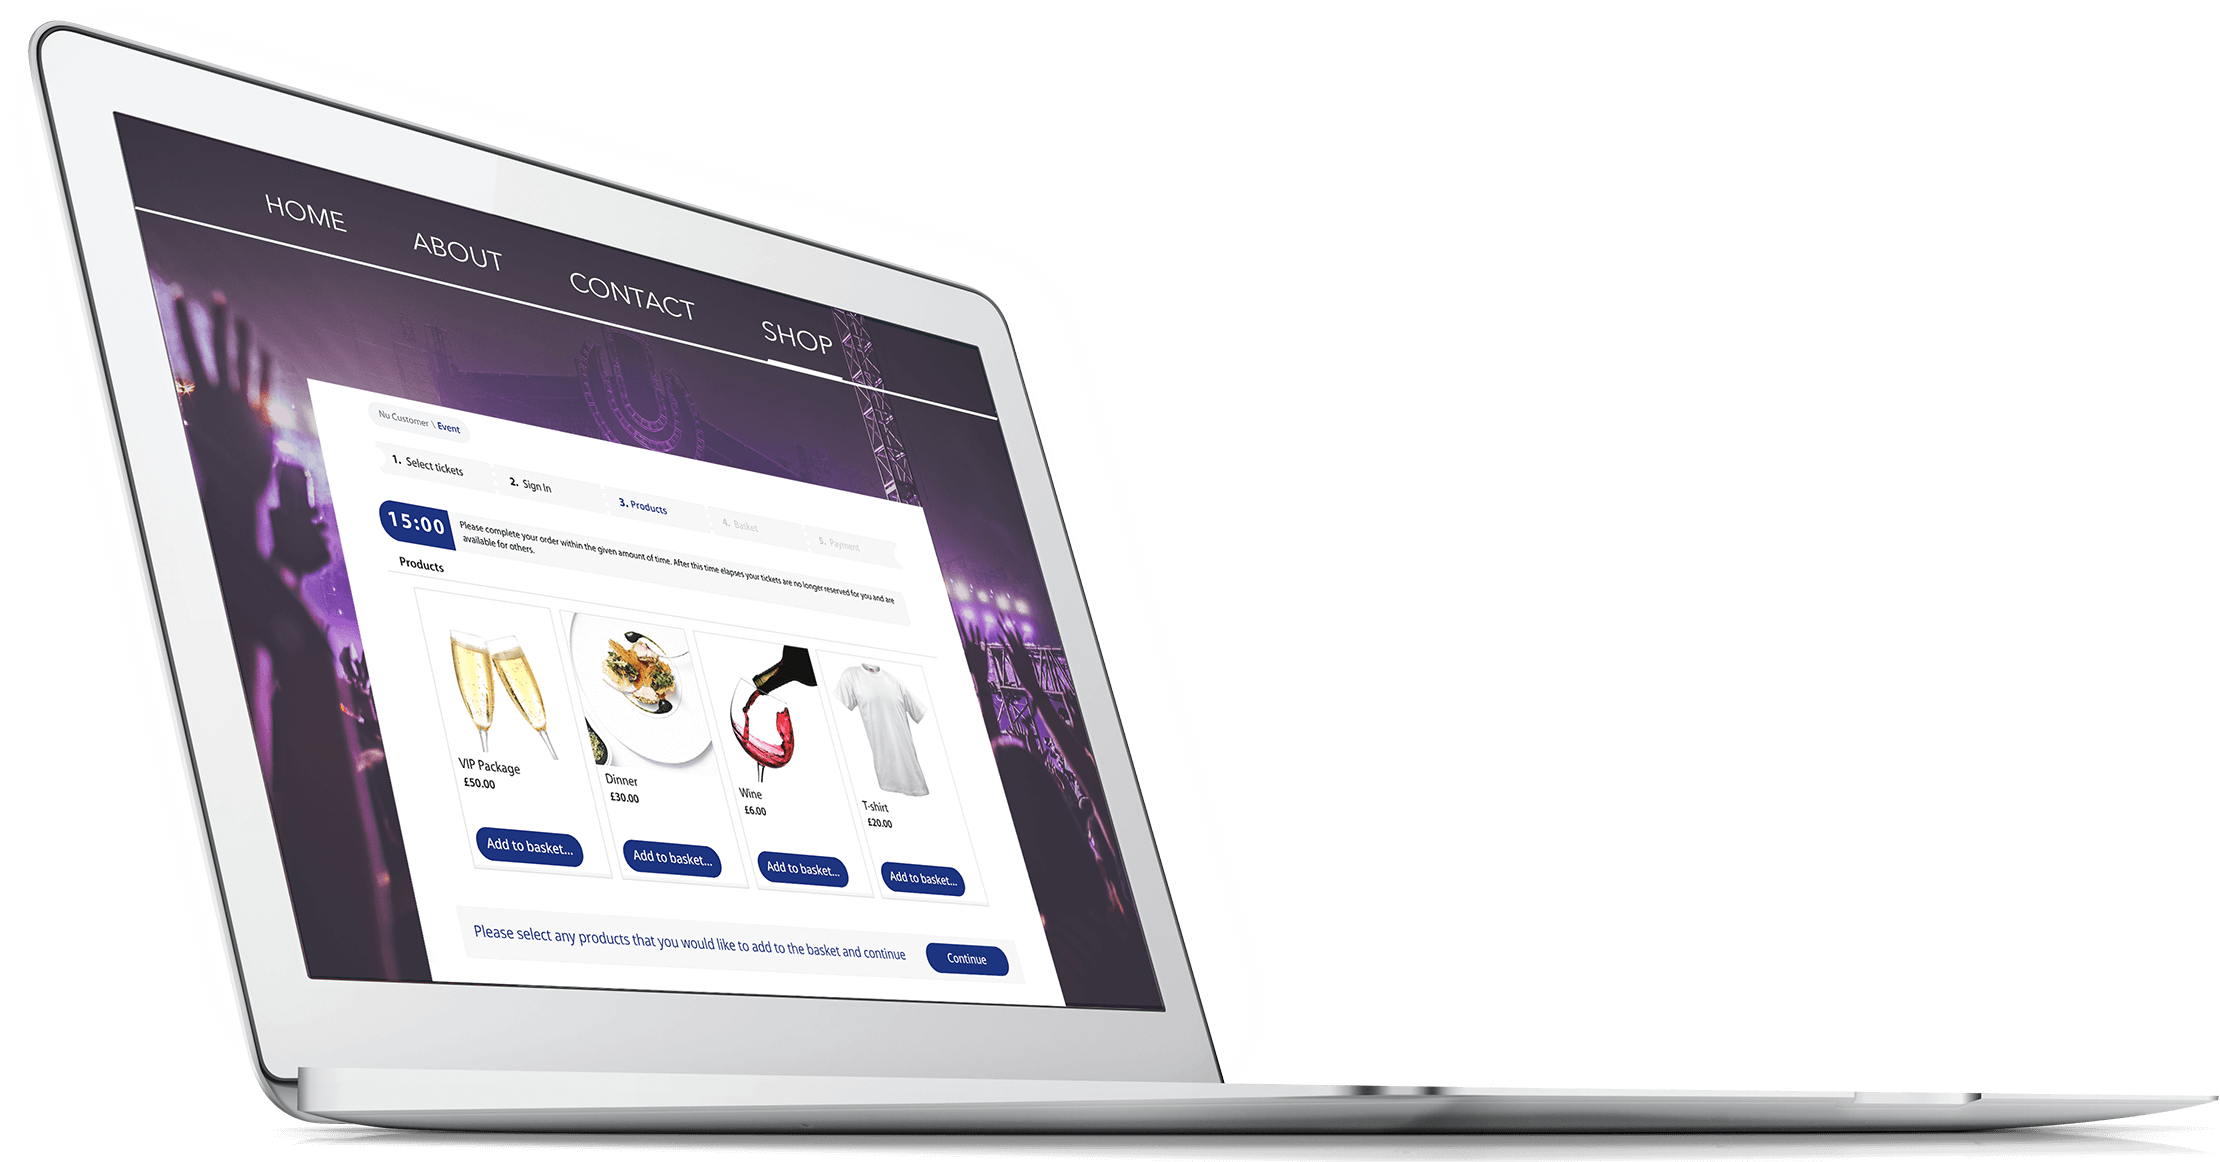 Selling event merchandise with tickets straight from your own website